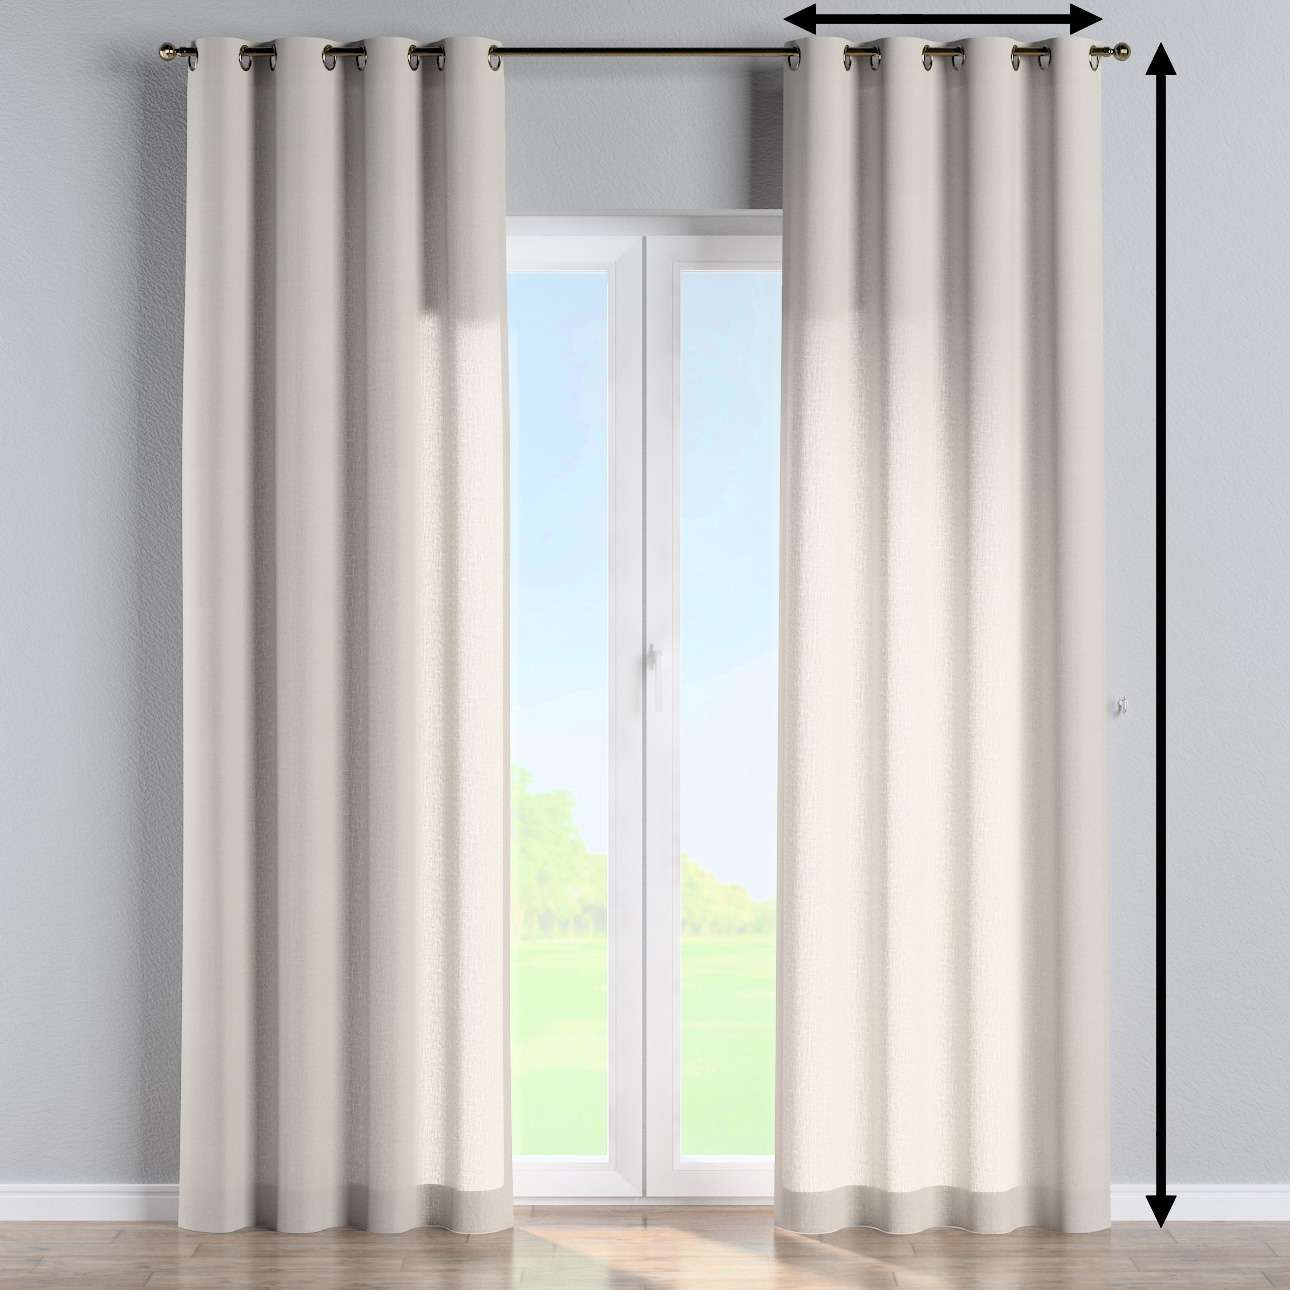 Eyelet curtain in collection Linen, fabric: 159-07